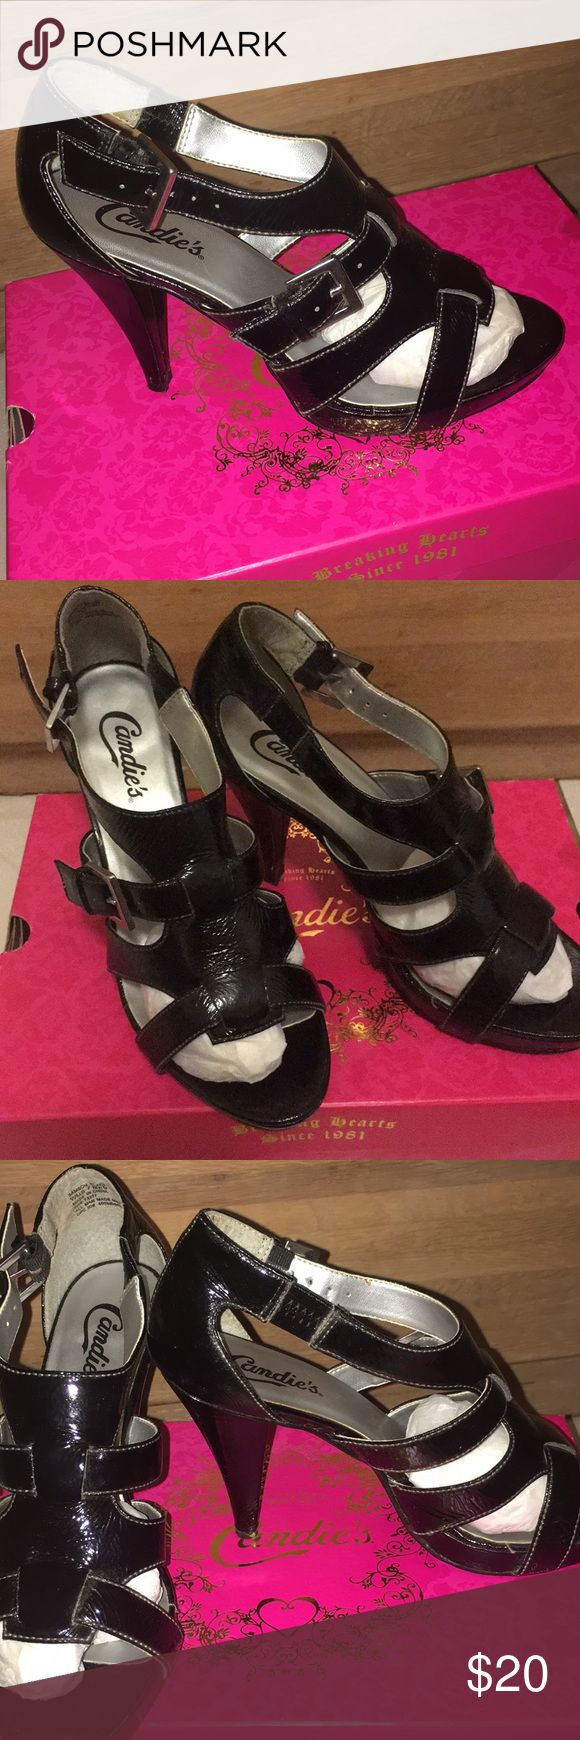 """Candie's gladiator heels Black gladiator heels 👠  """"Samson Black"""" model About two inch heel  Only worn twice then stashed away in closet GOOD CONDITION Candie's Shoes Heels"""